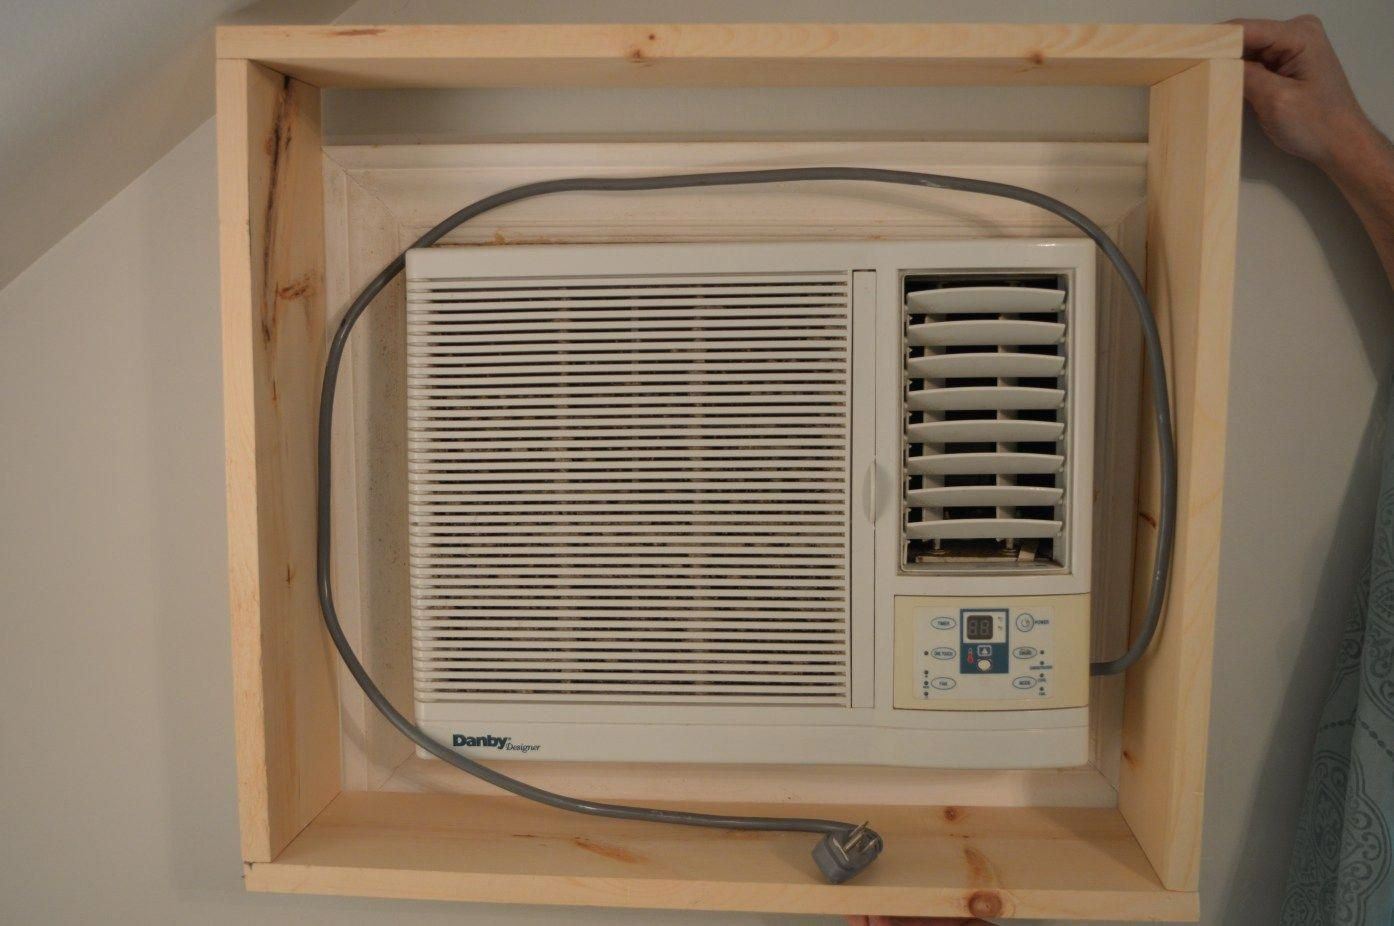 Find out how to install a truly portable air conditioner